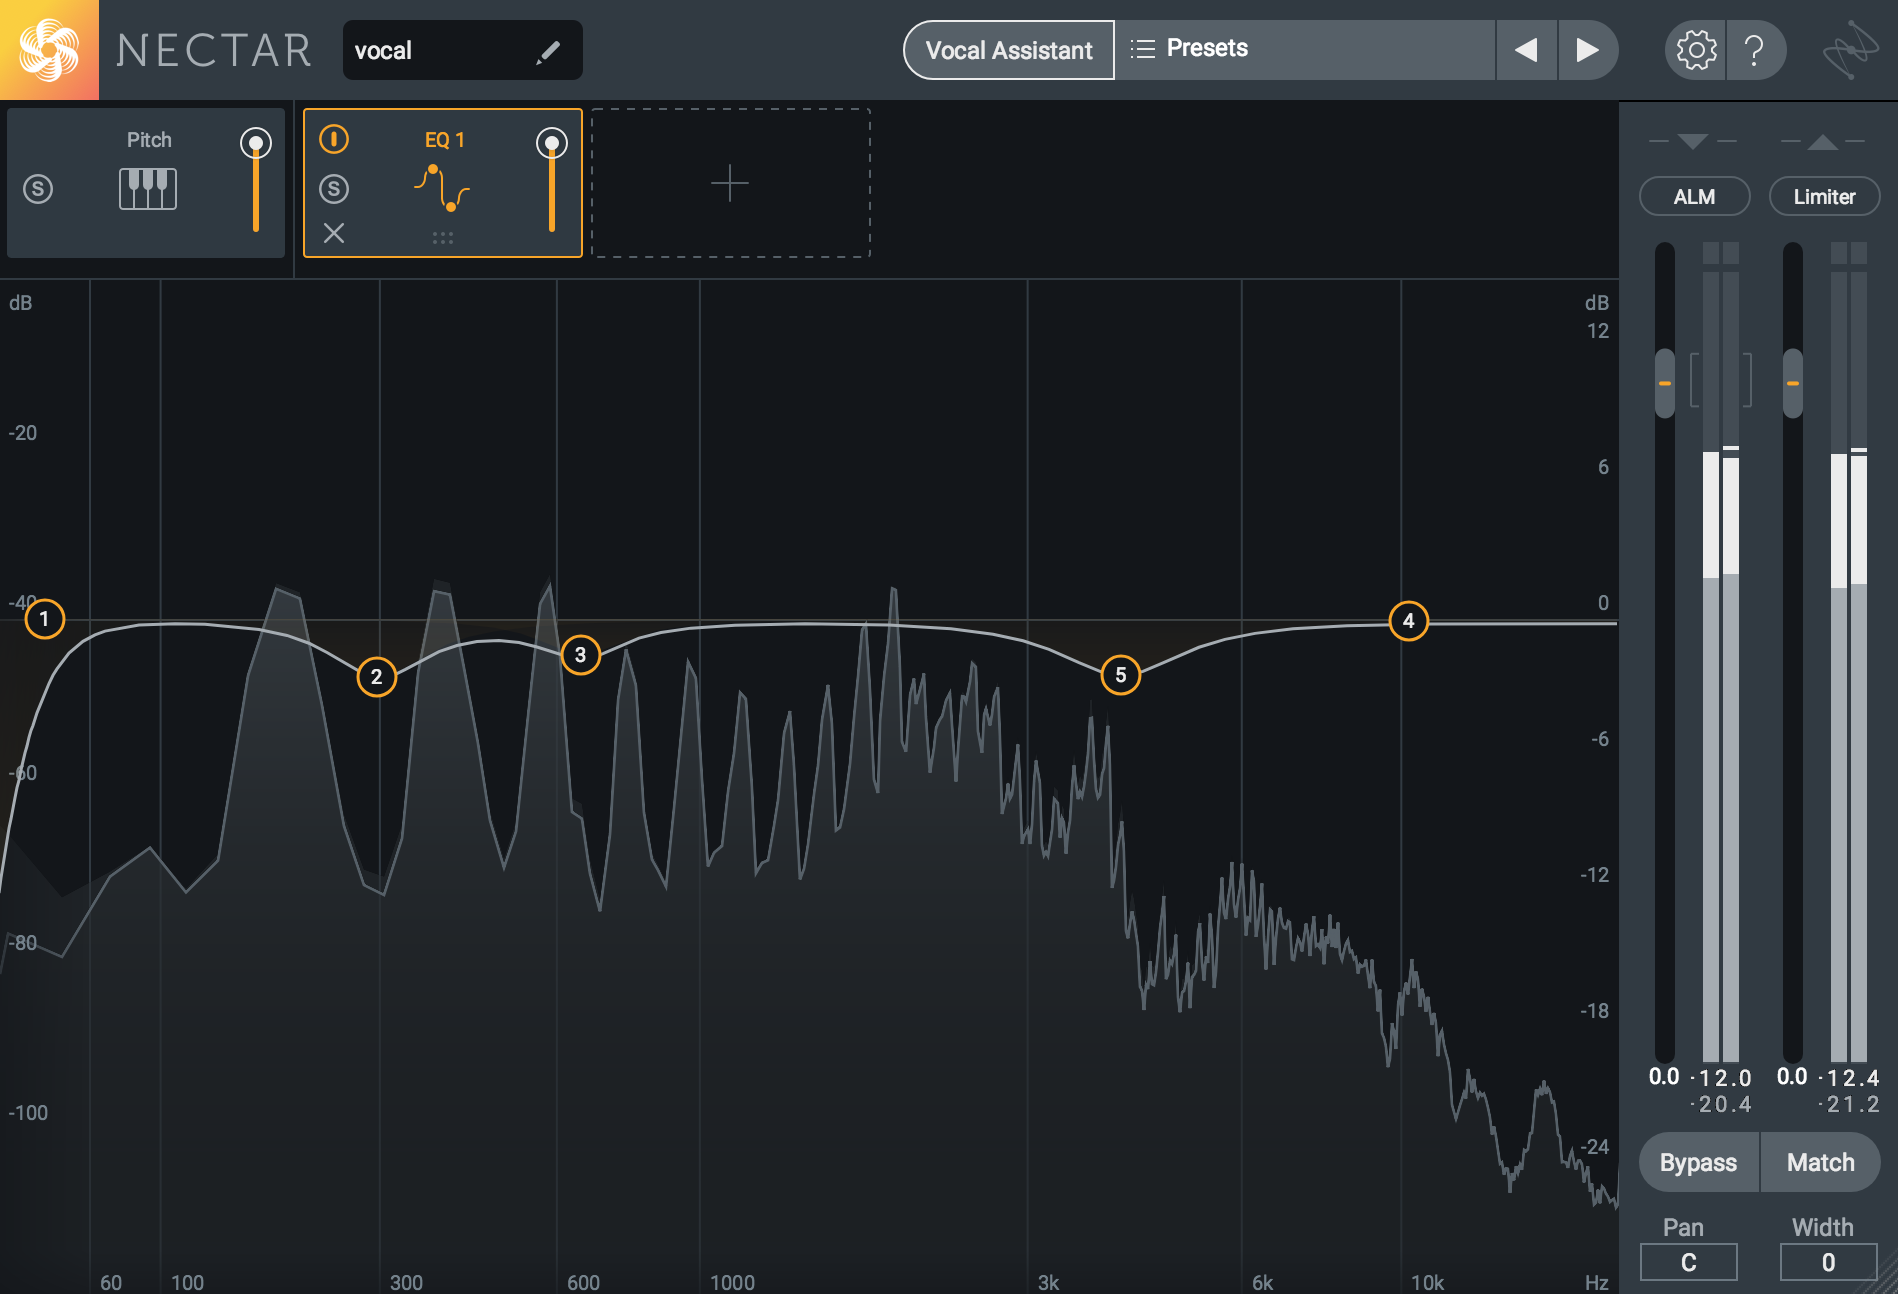 How to EQ Vocals: 9 Steps for EQing Lead Vox